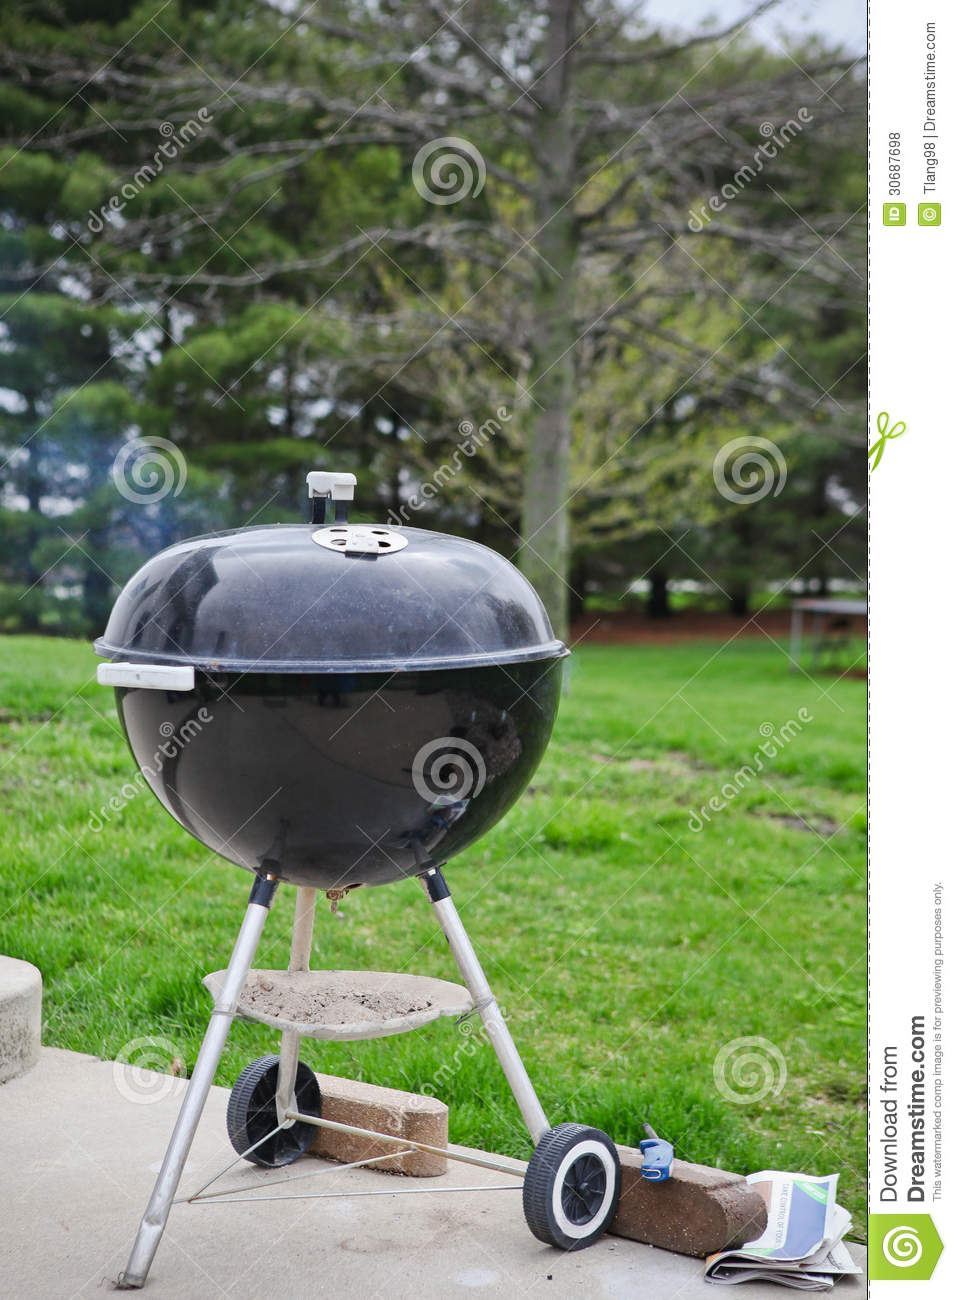 Charming Charcoal Grill